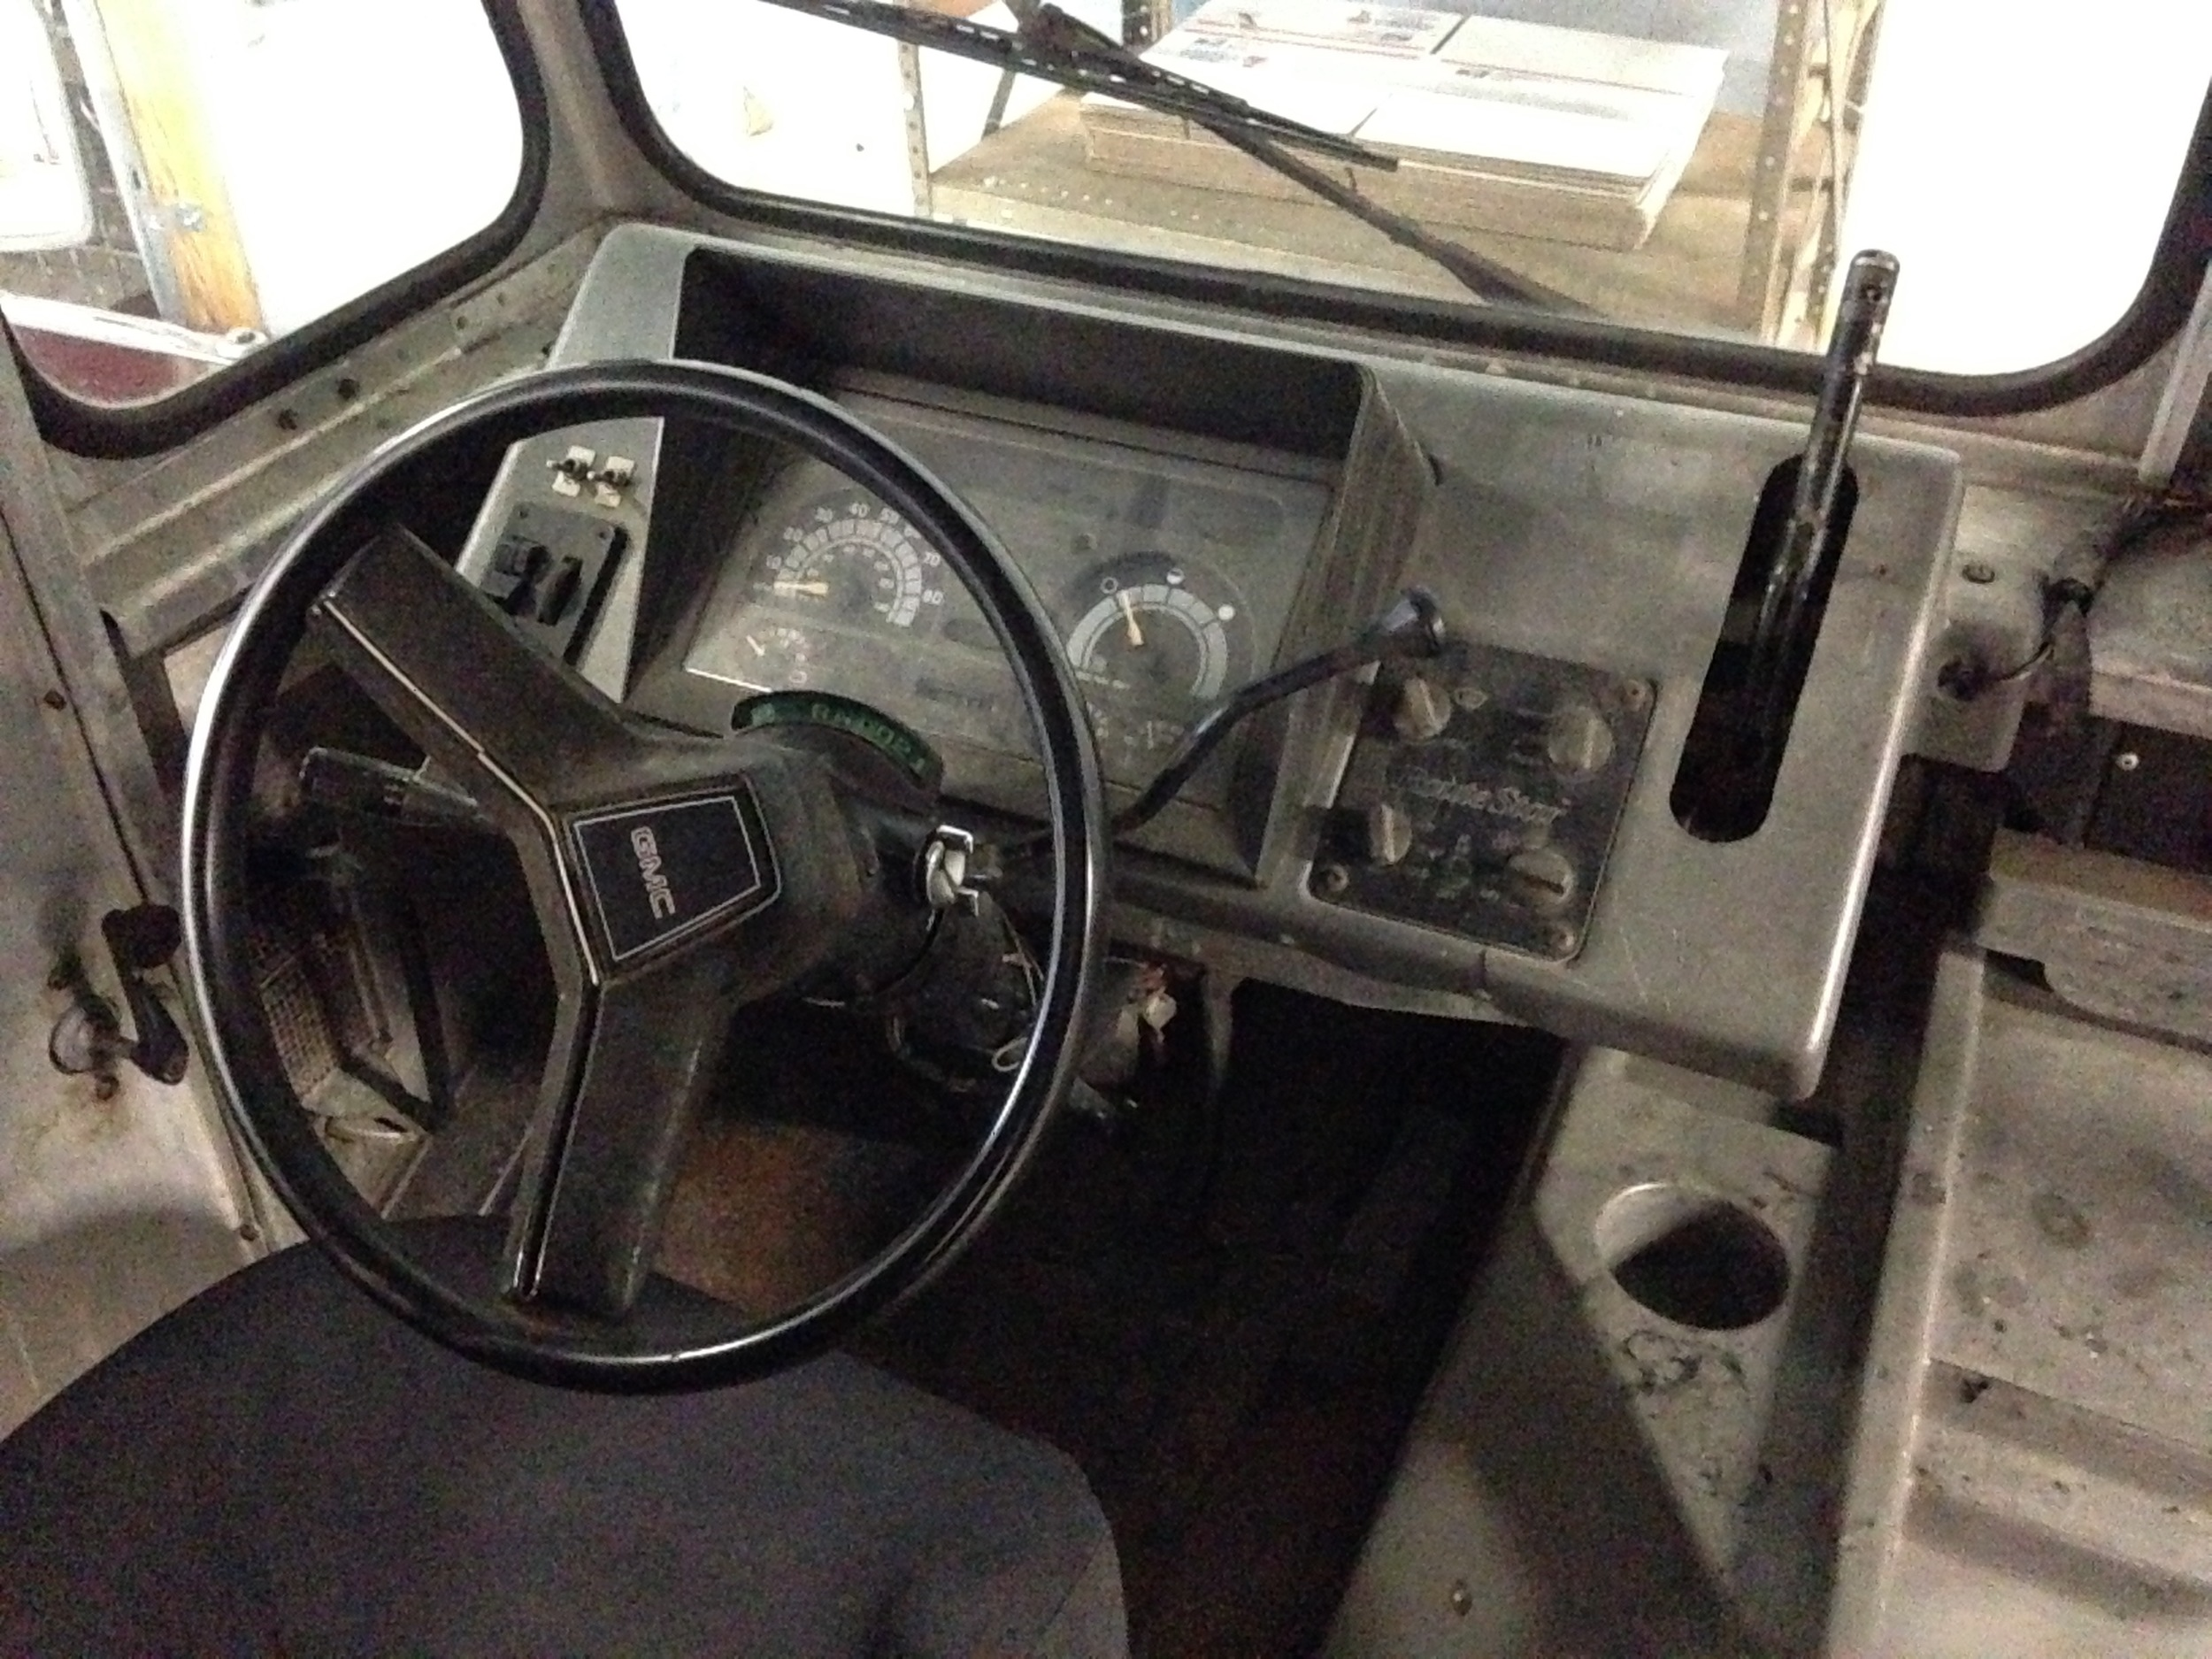 the whole dash is aluminum with some plastic/metal/glass fixtures. Needs a good cleaning.